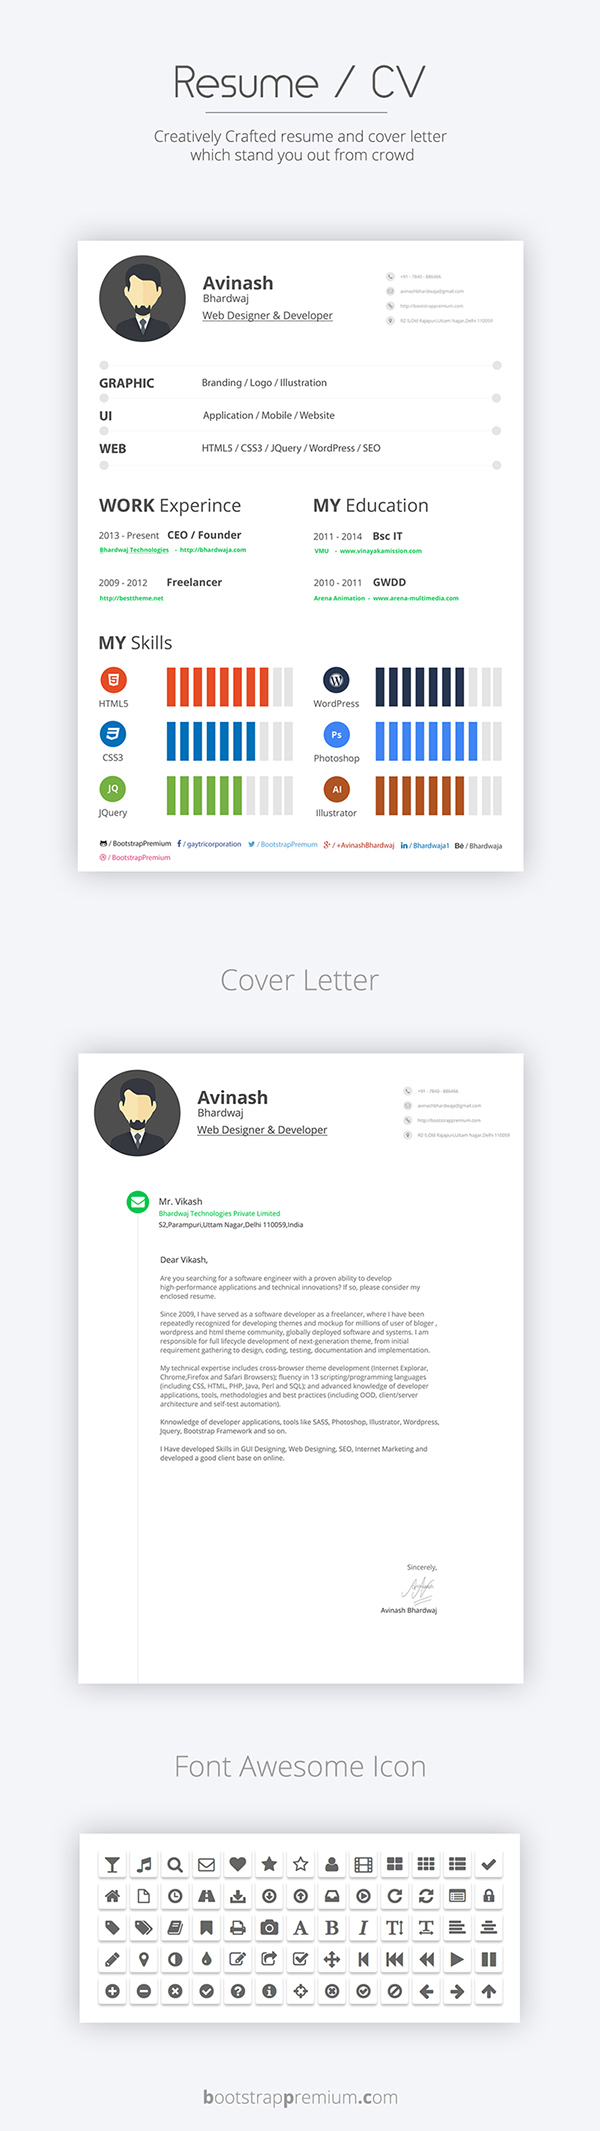 Web Designer Resume:  Ui Developer Resume